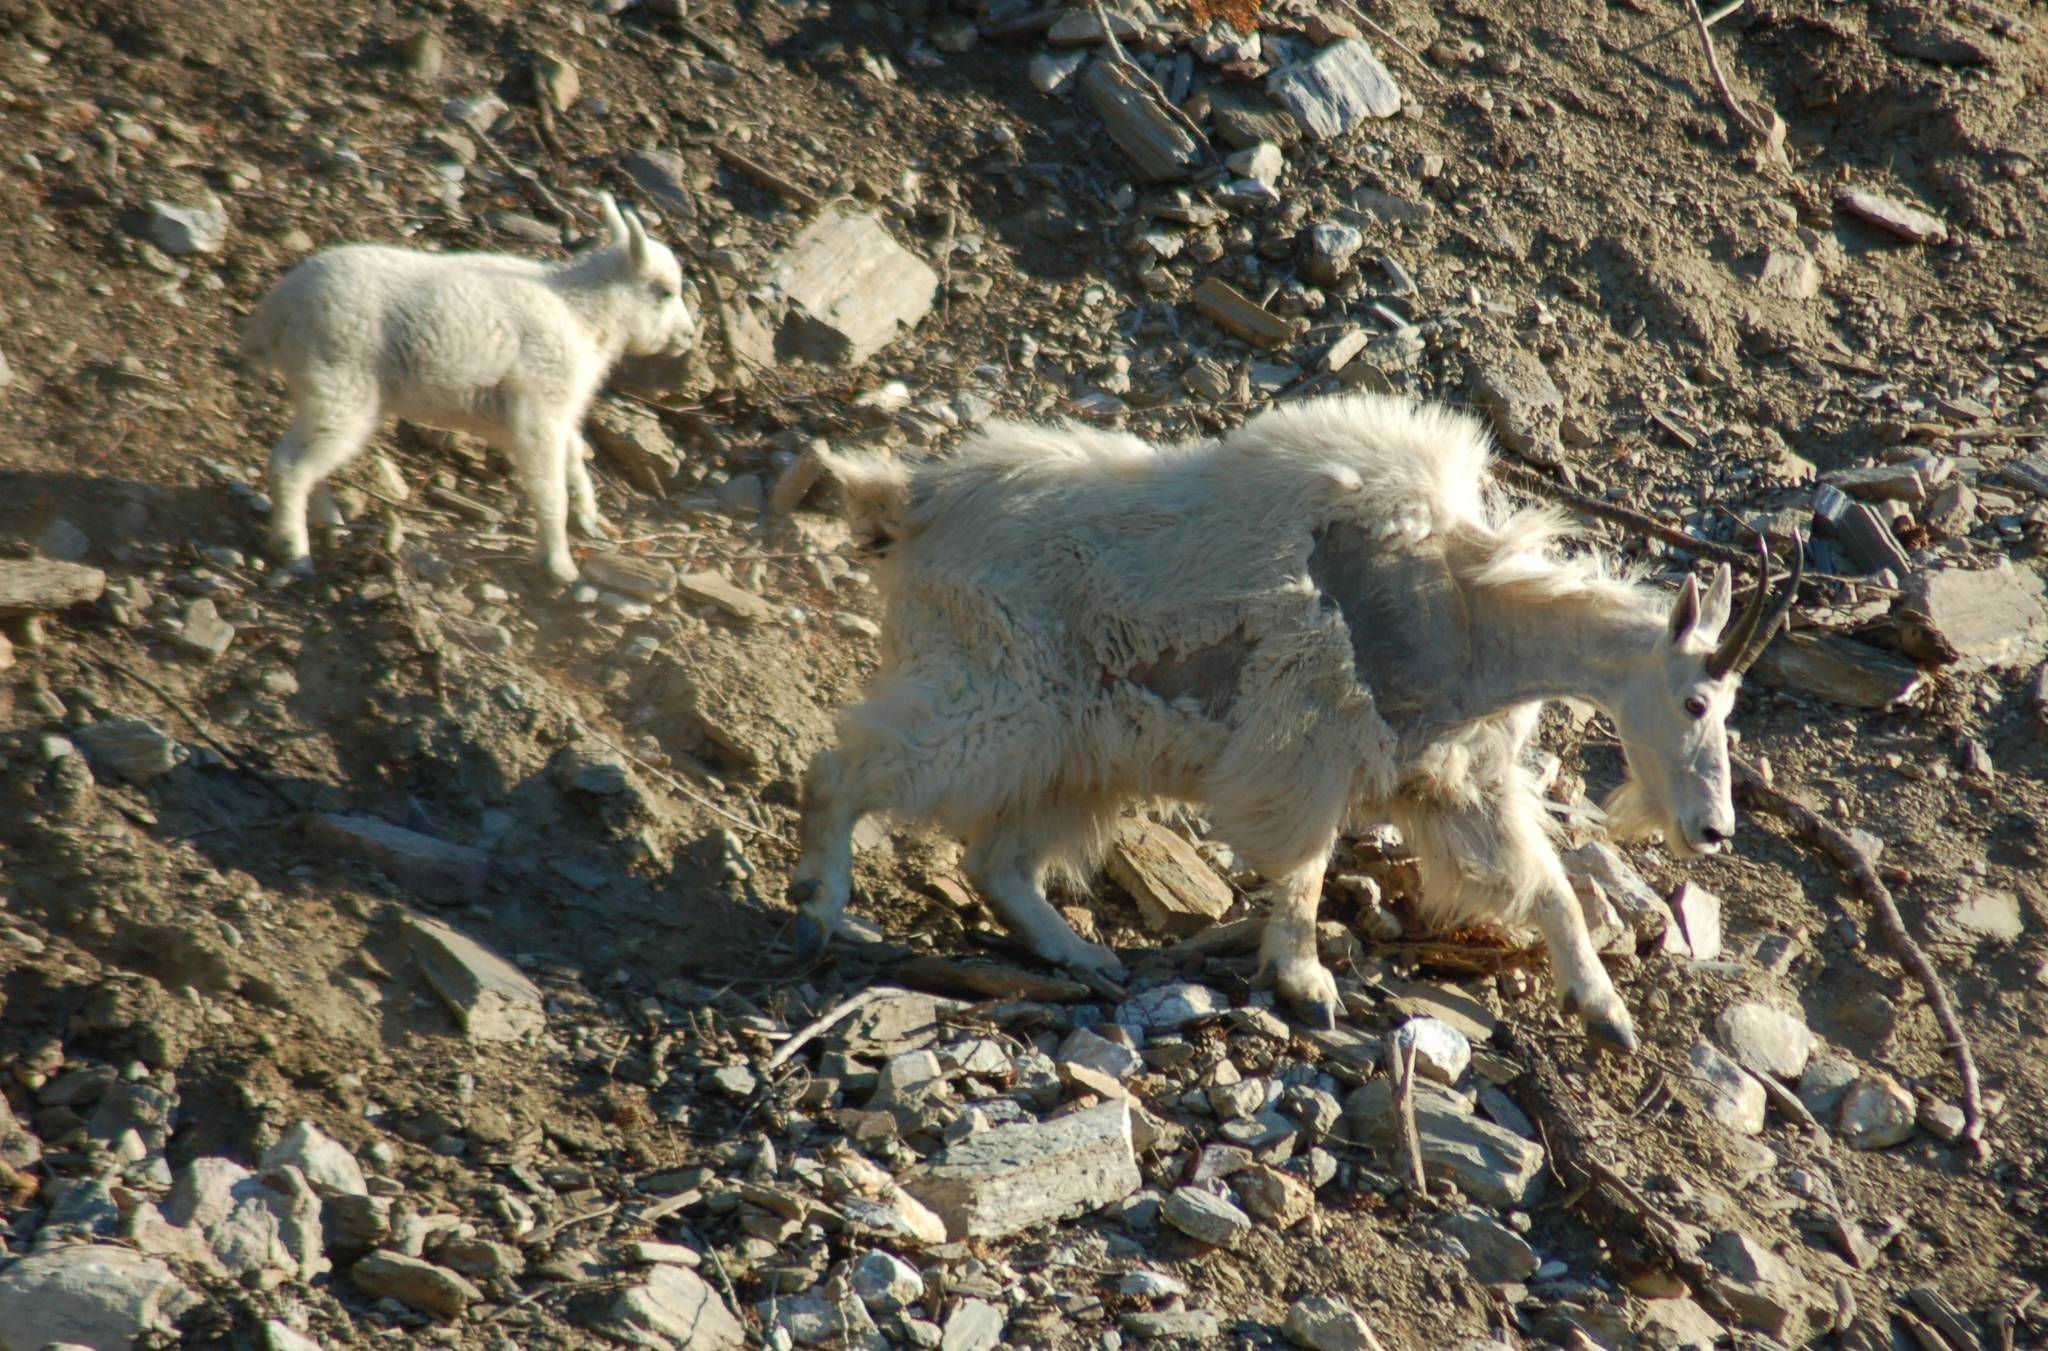 Barb Butchart took these photos on Highway 31 at Lardeau Bluffs on June 18. The next day two of the mountain goats were struck and killed by a large vehicle.